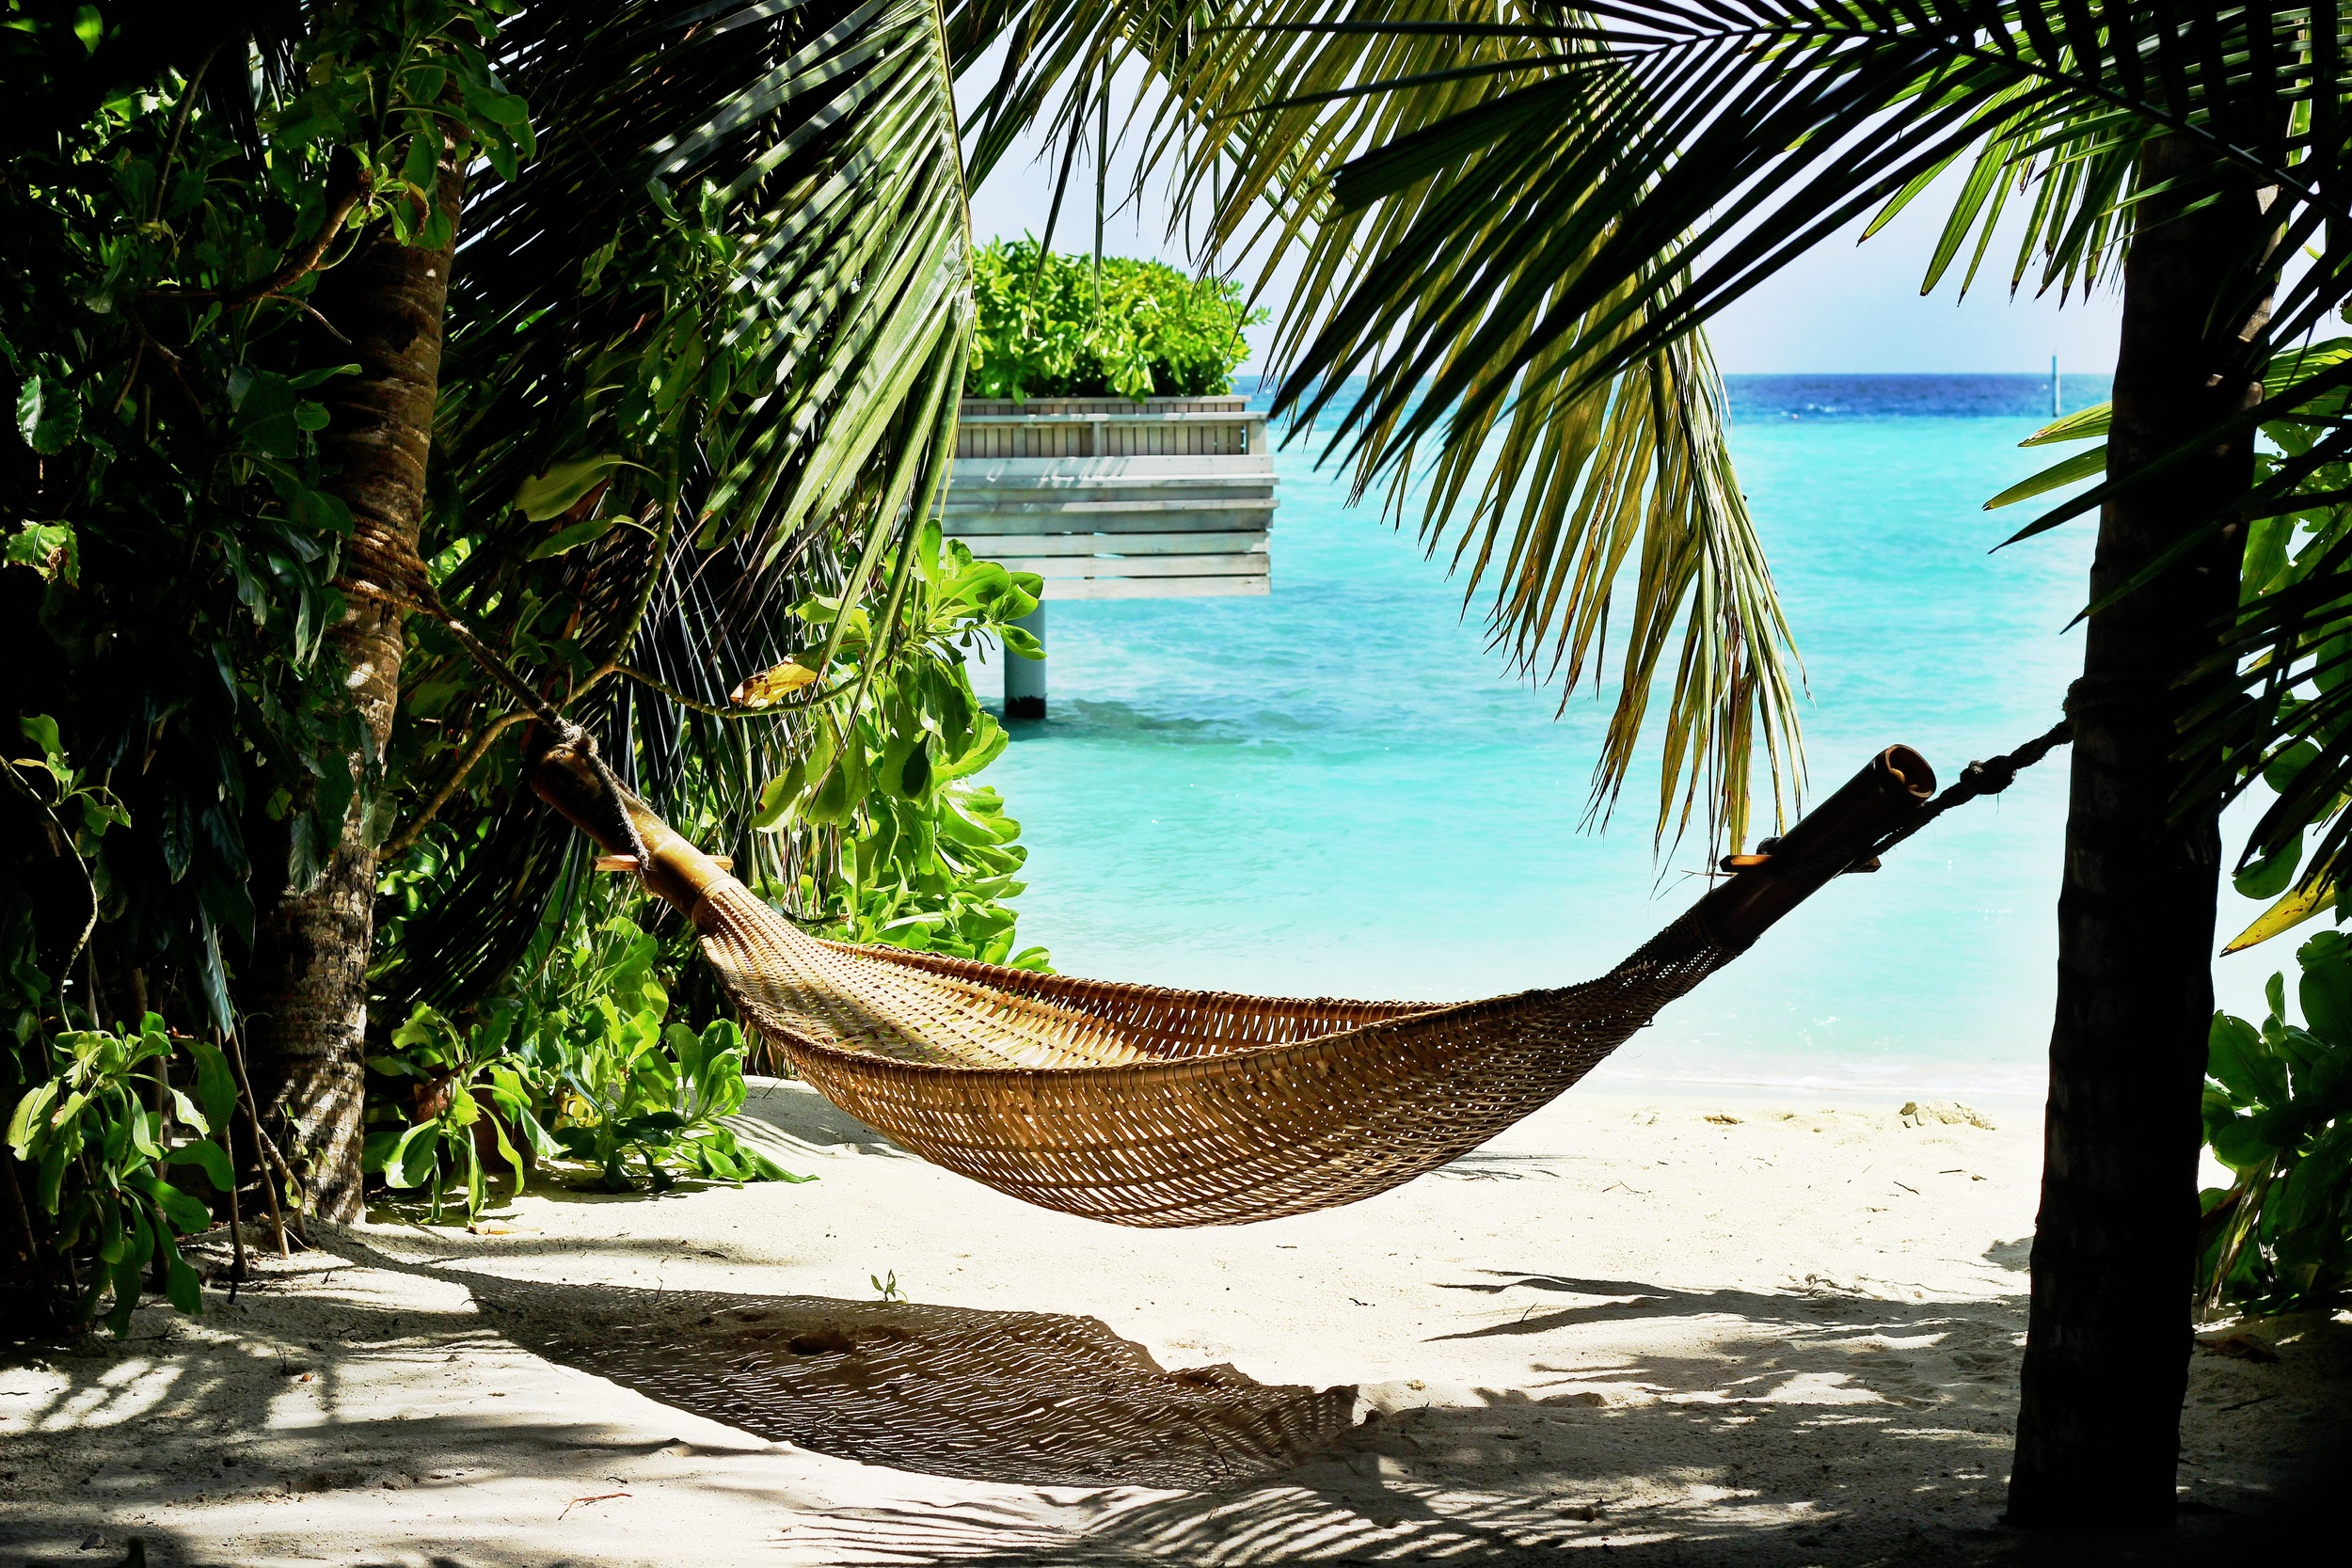 Sights like this are the norm in the Maldives. aka Heaven On Earth